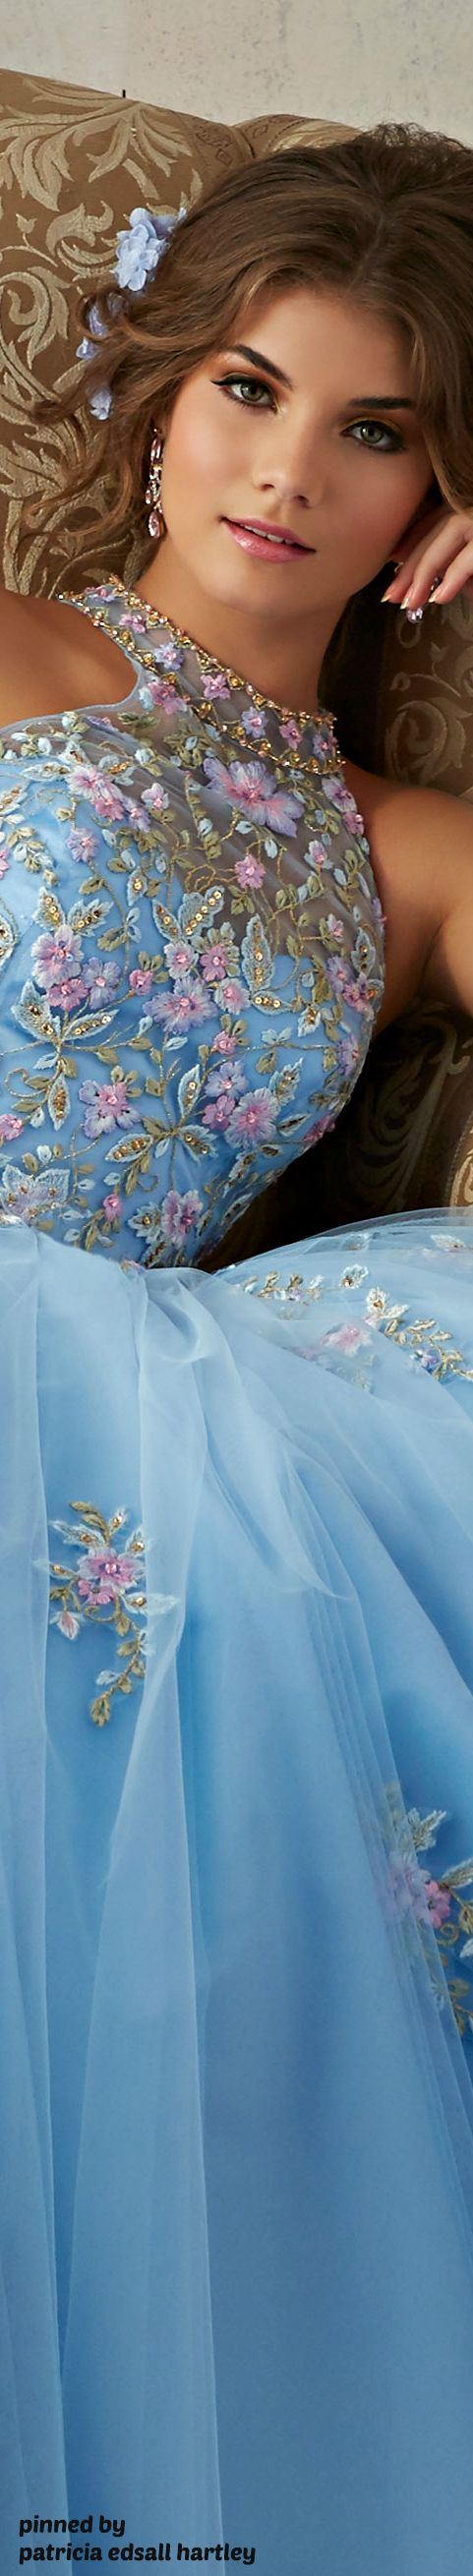 Inspirational Quotes On Pinterest: 1000+ Ideas About Xv Dresses On Pinterest